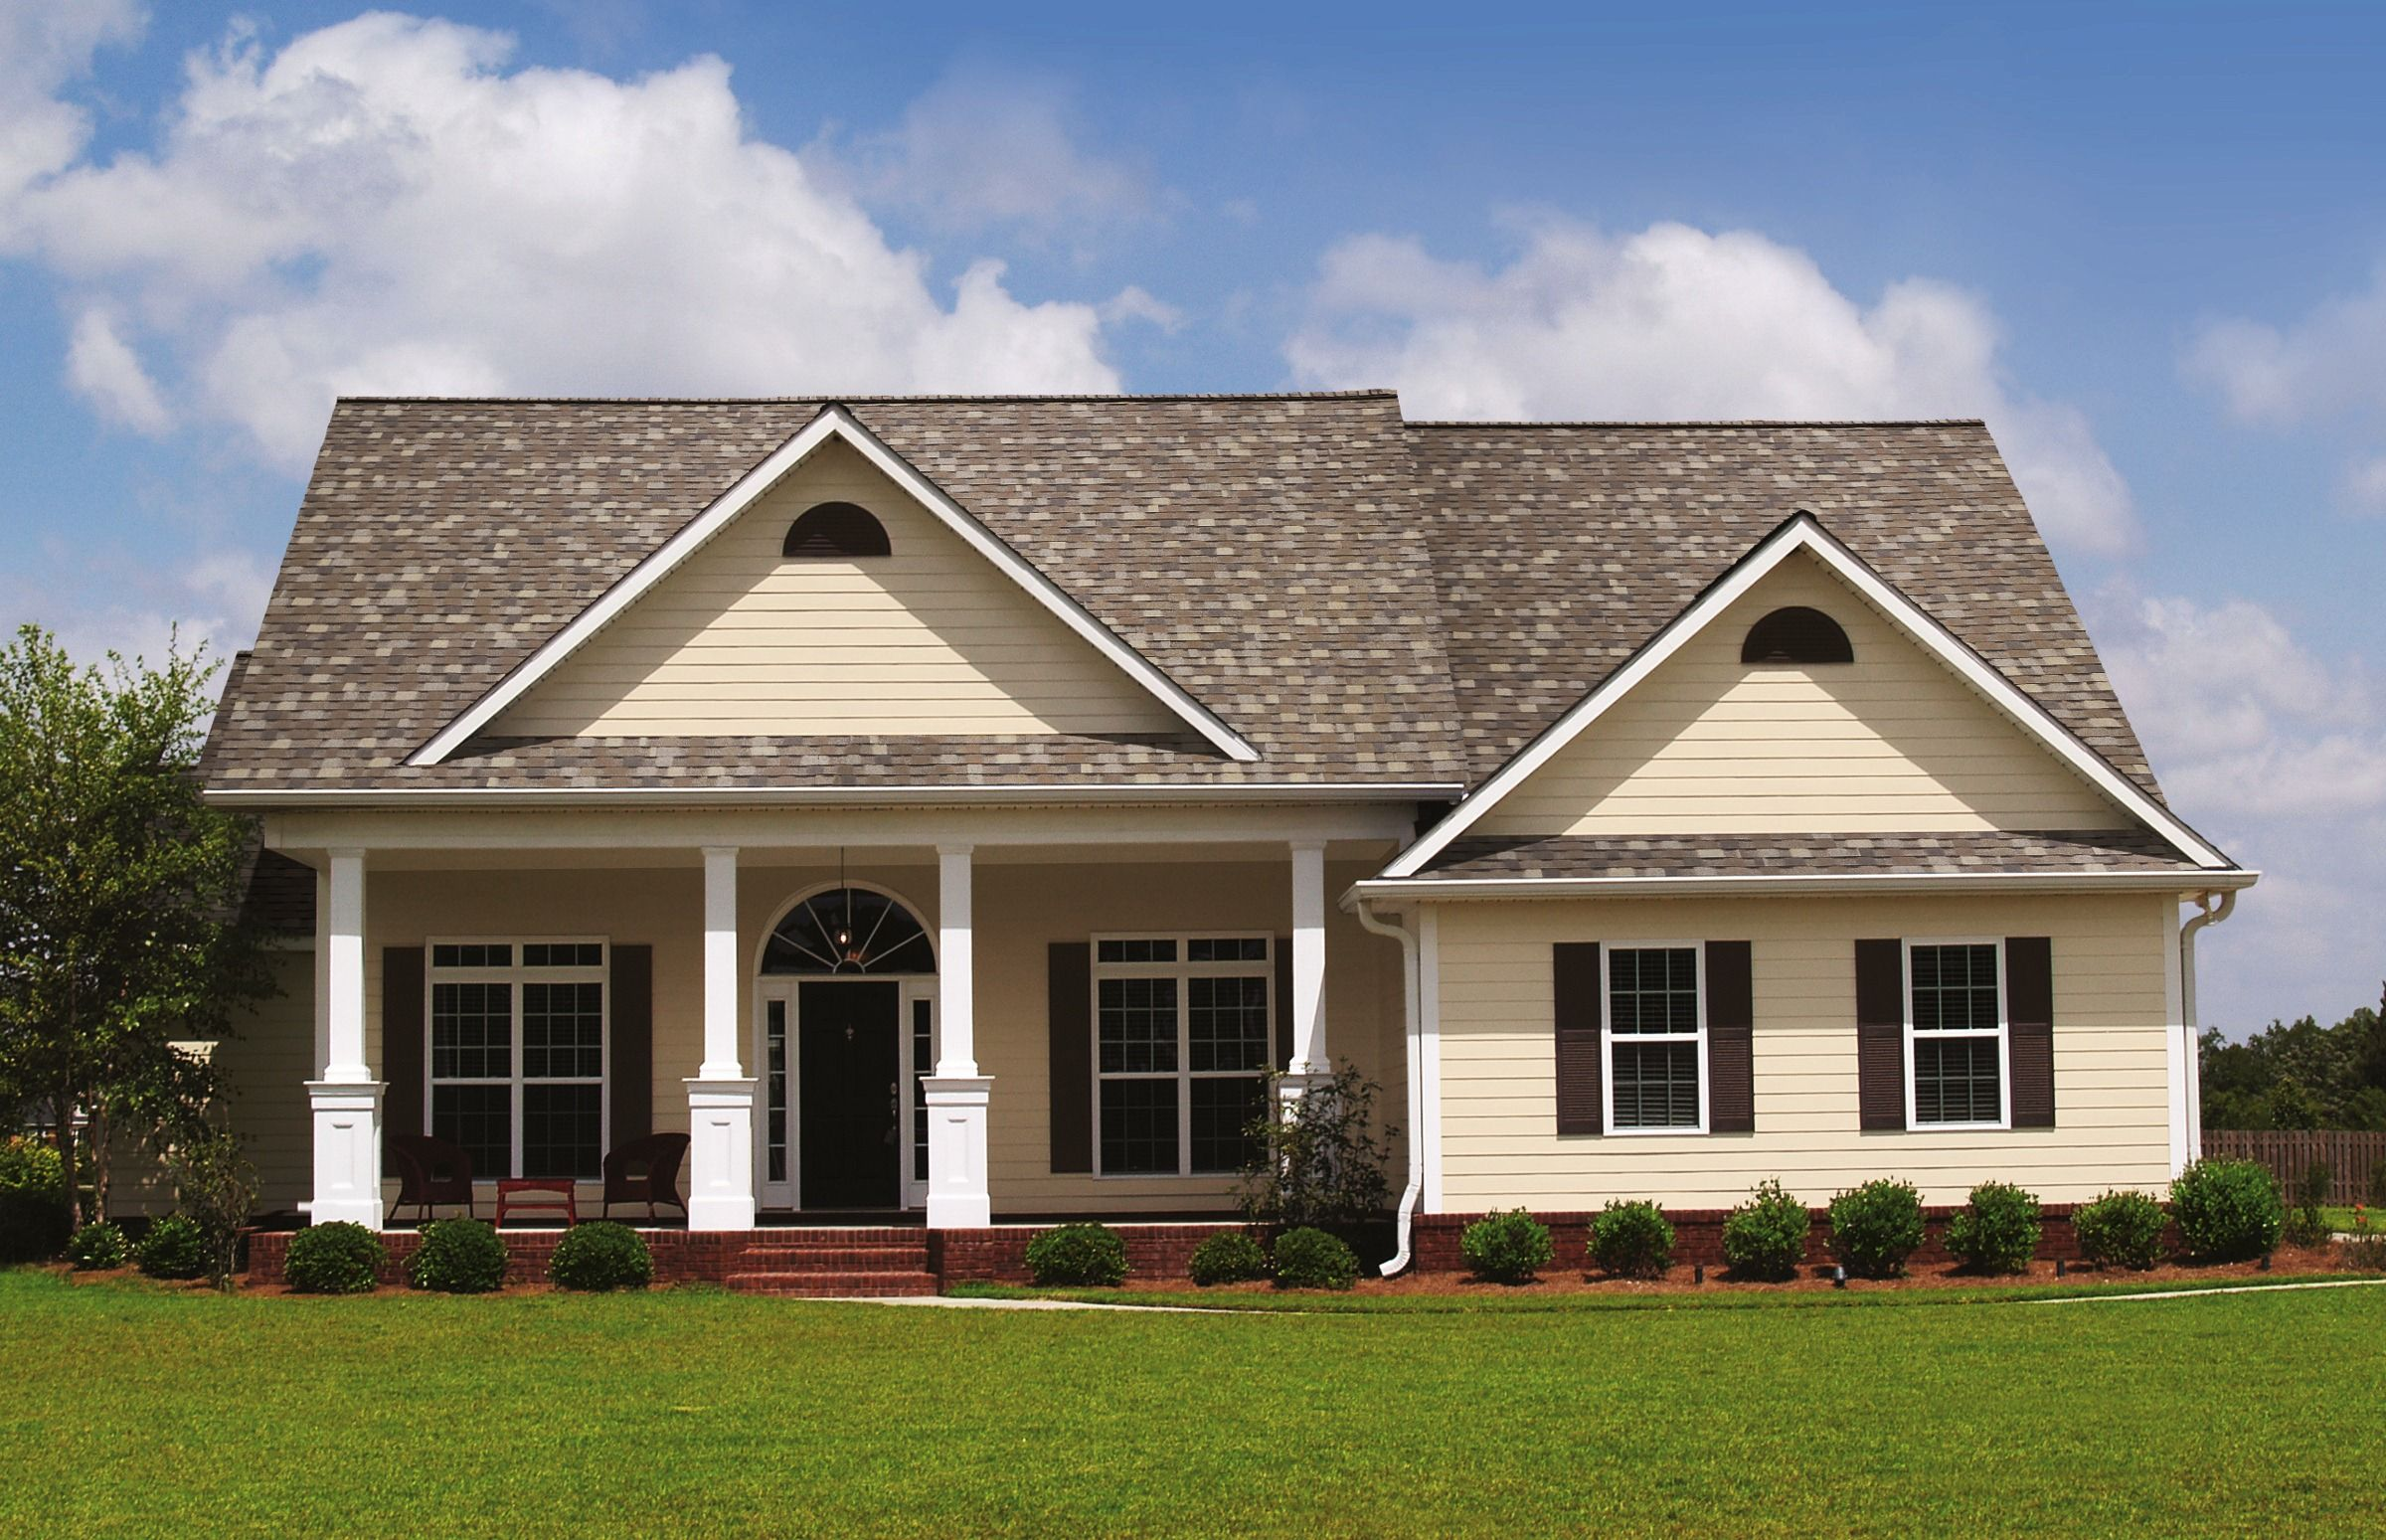 Best Patriot Roof Shingle From Certainteed The Color Seen Here 640 x 480